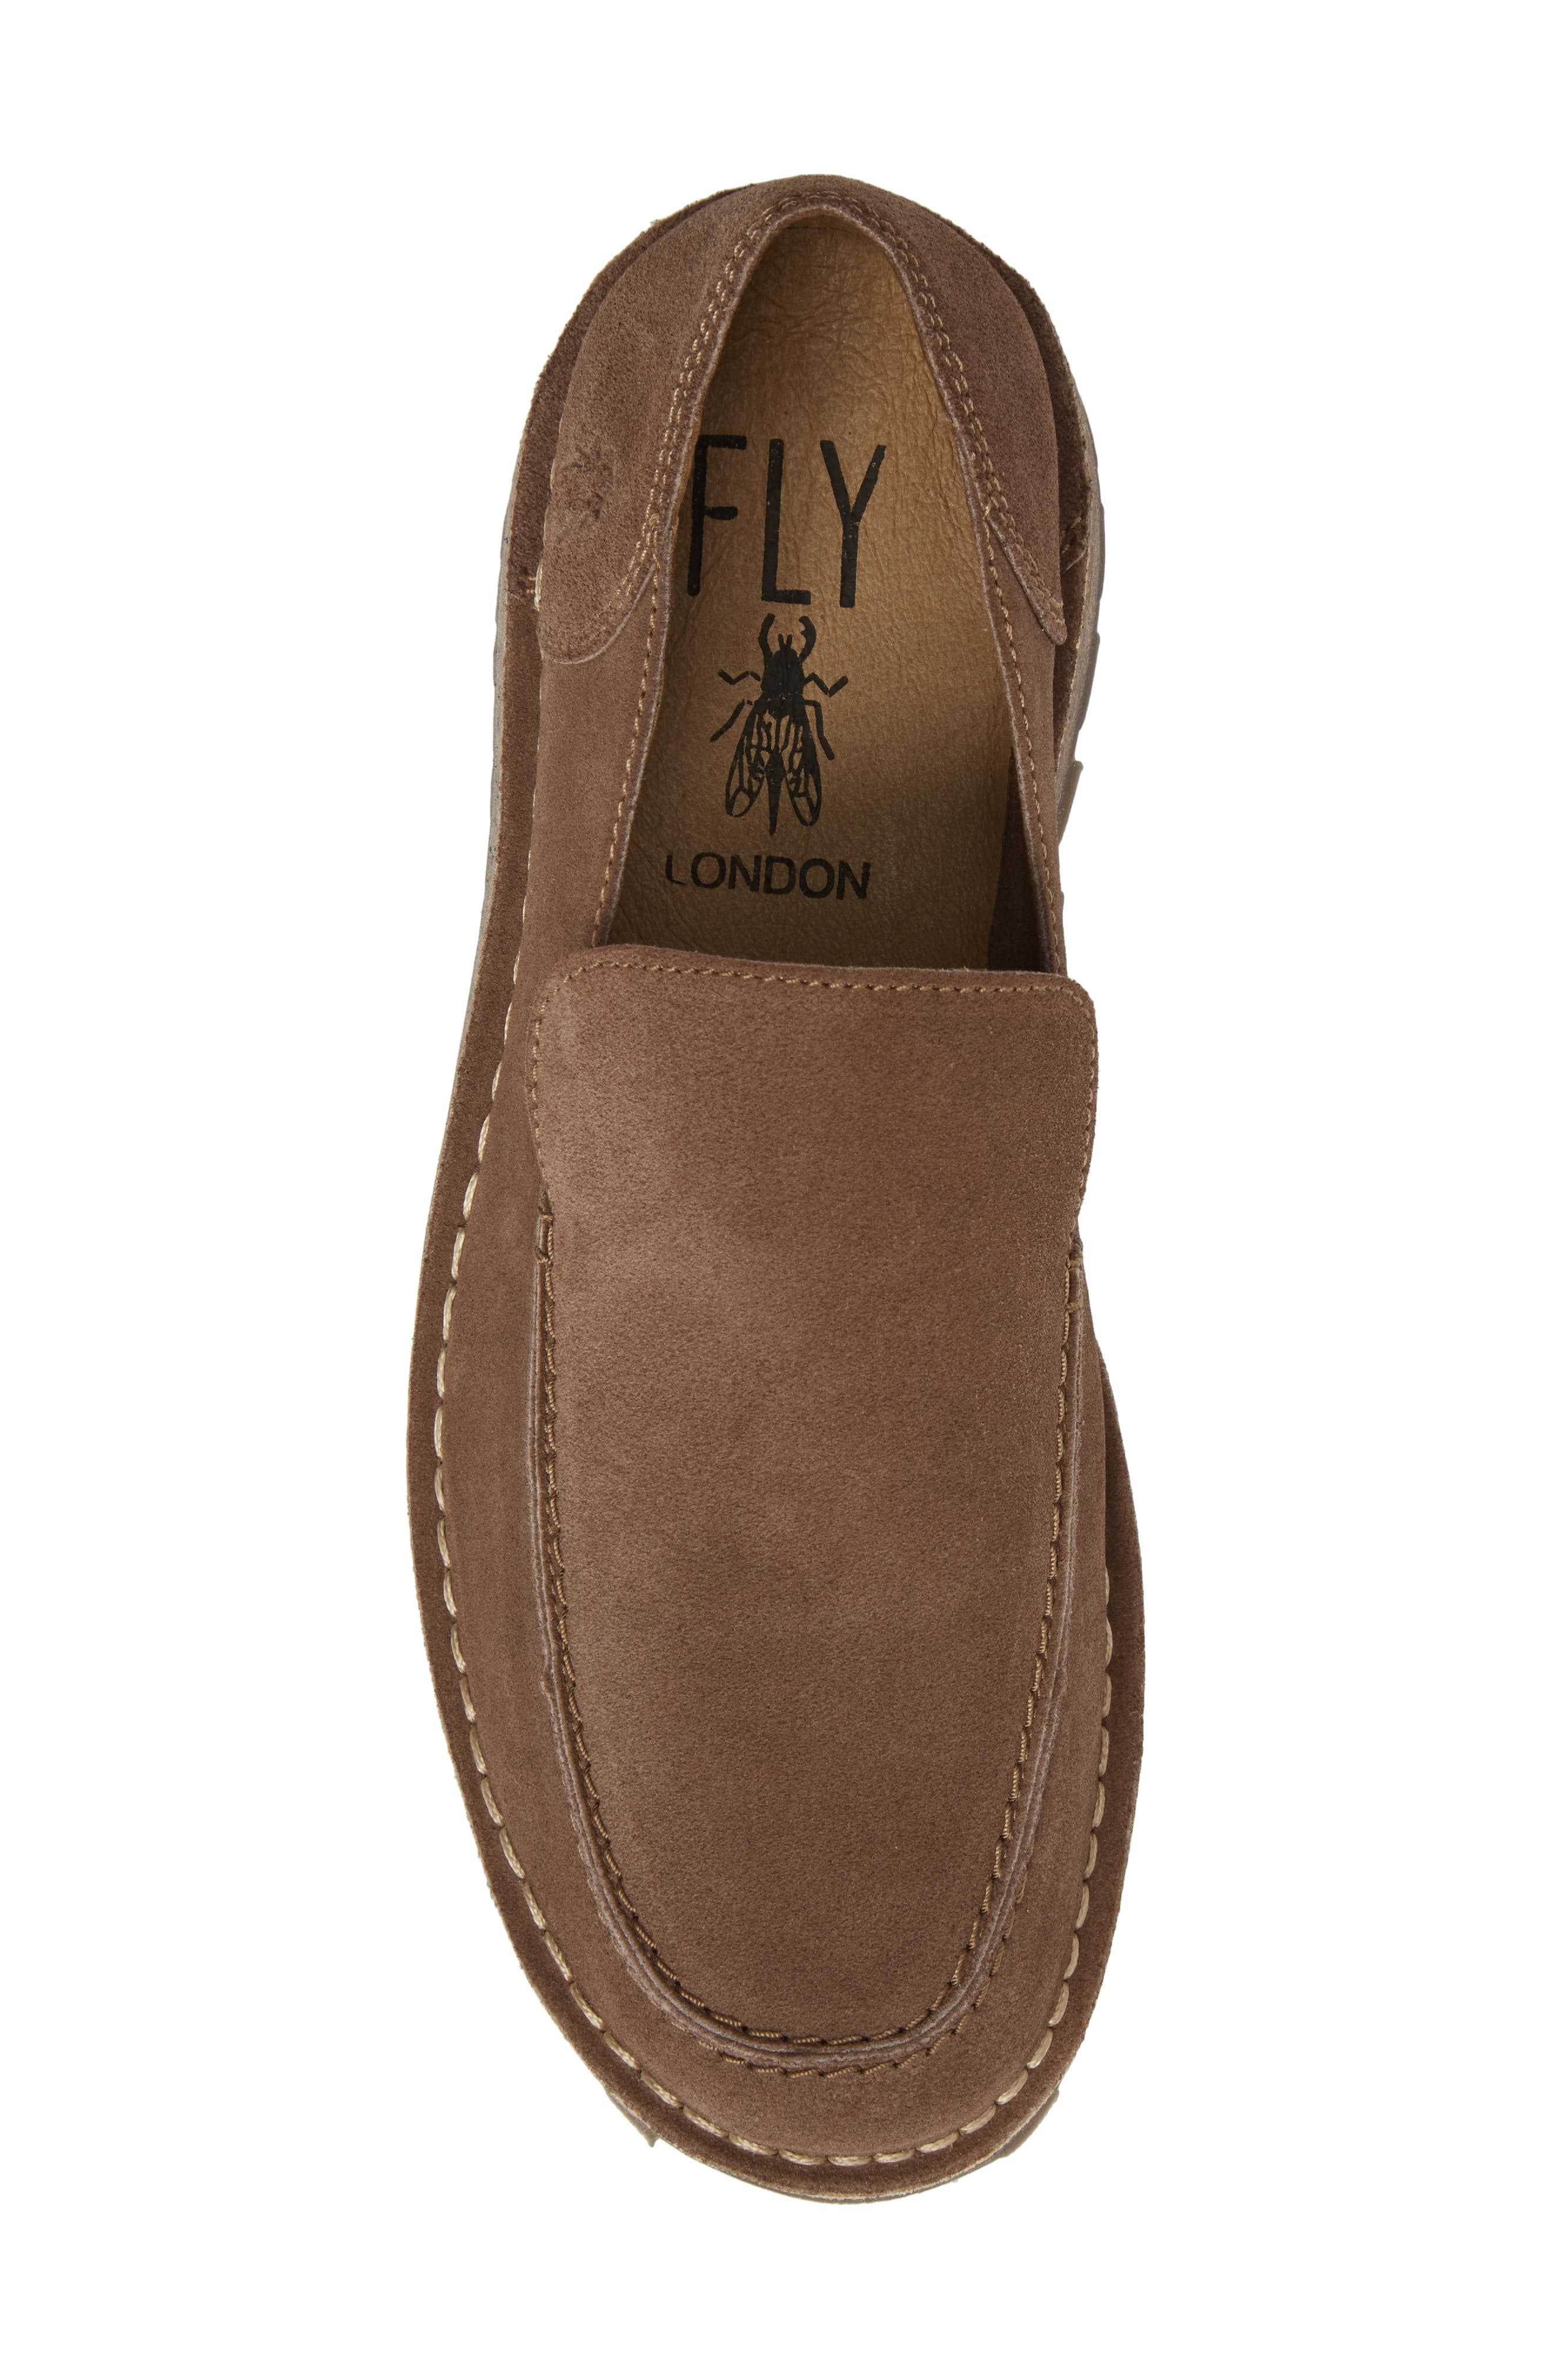 Meve Moc Toe Loafer,                             Alternate thumbnail 5, color,                             Taupe Suede